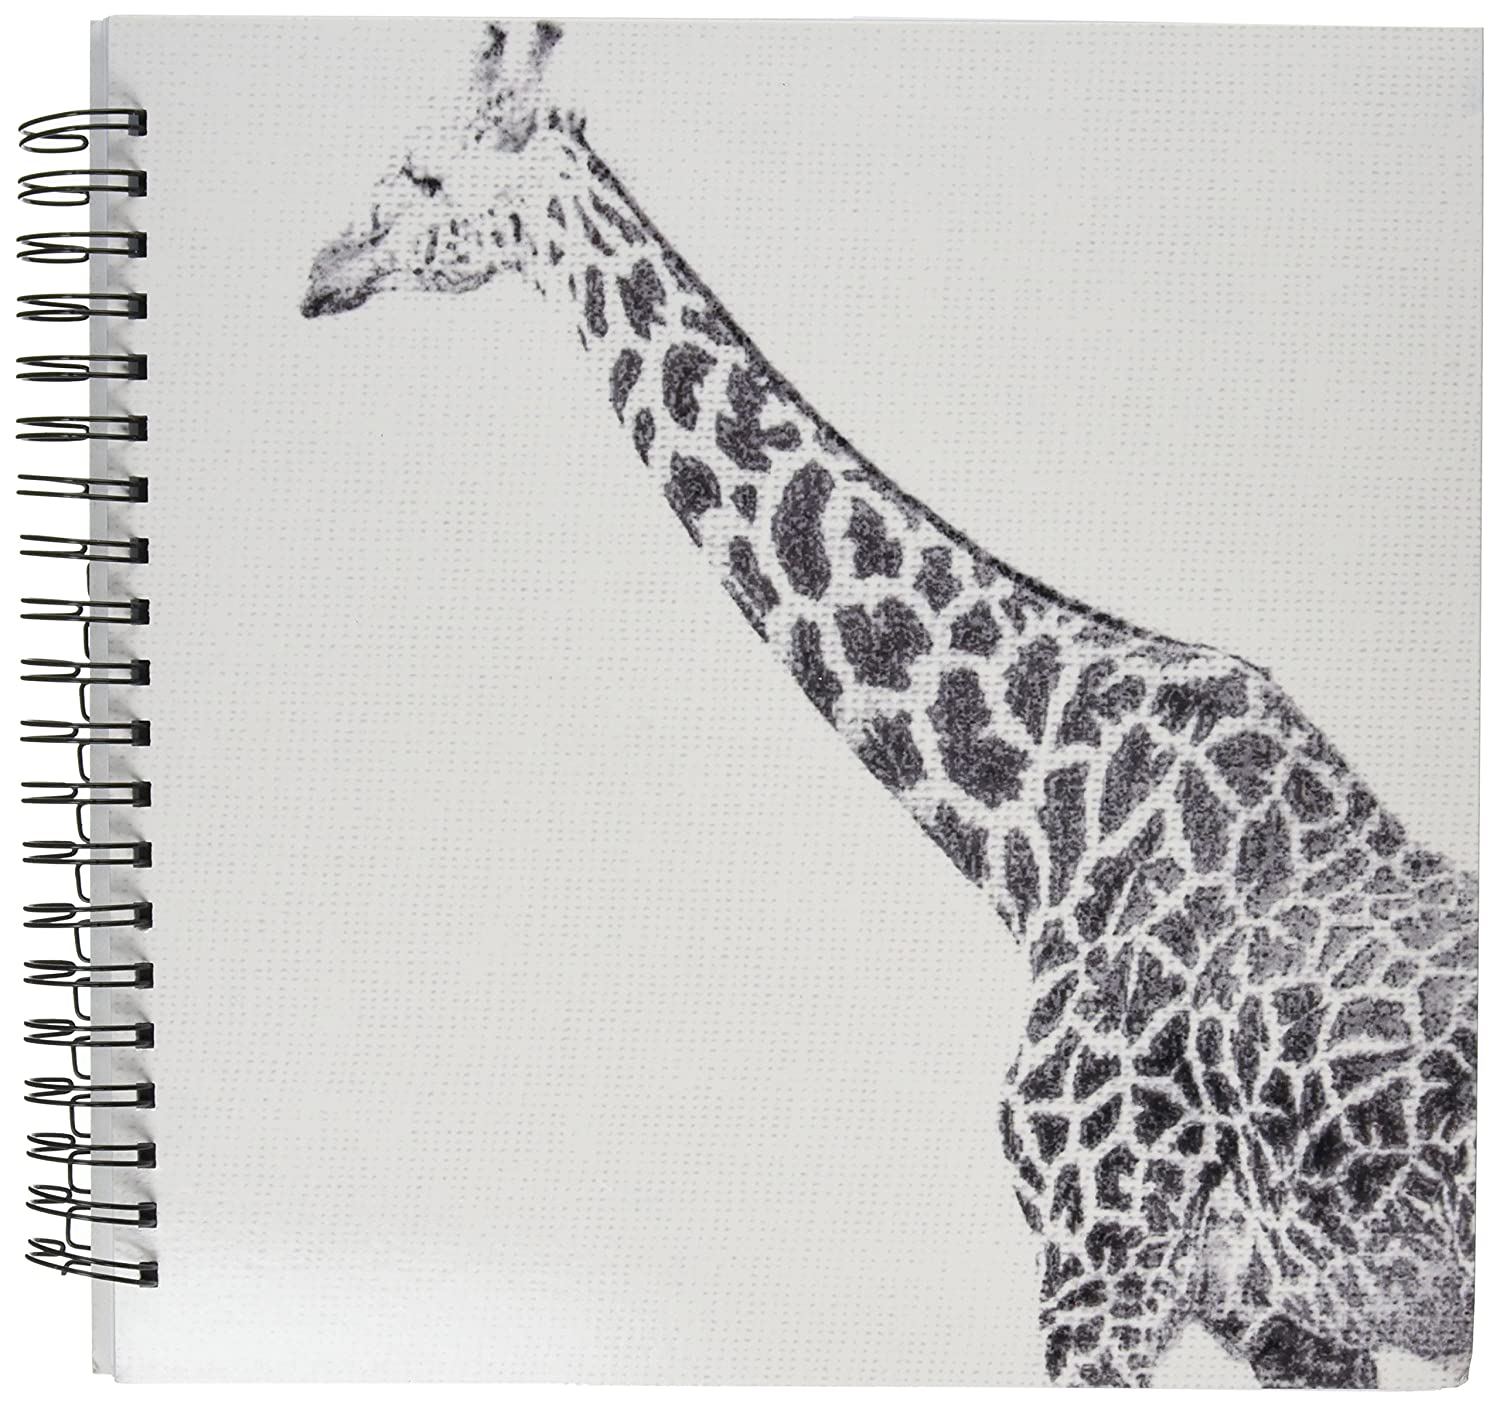 3drose db 47701 2 black and white giraffe sketch animals art memory book 12 by 12 inch amazon in office products